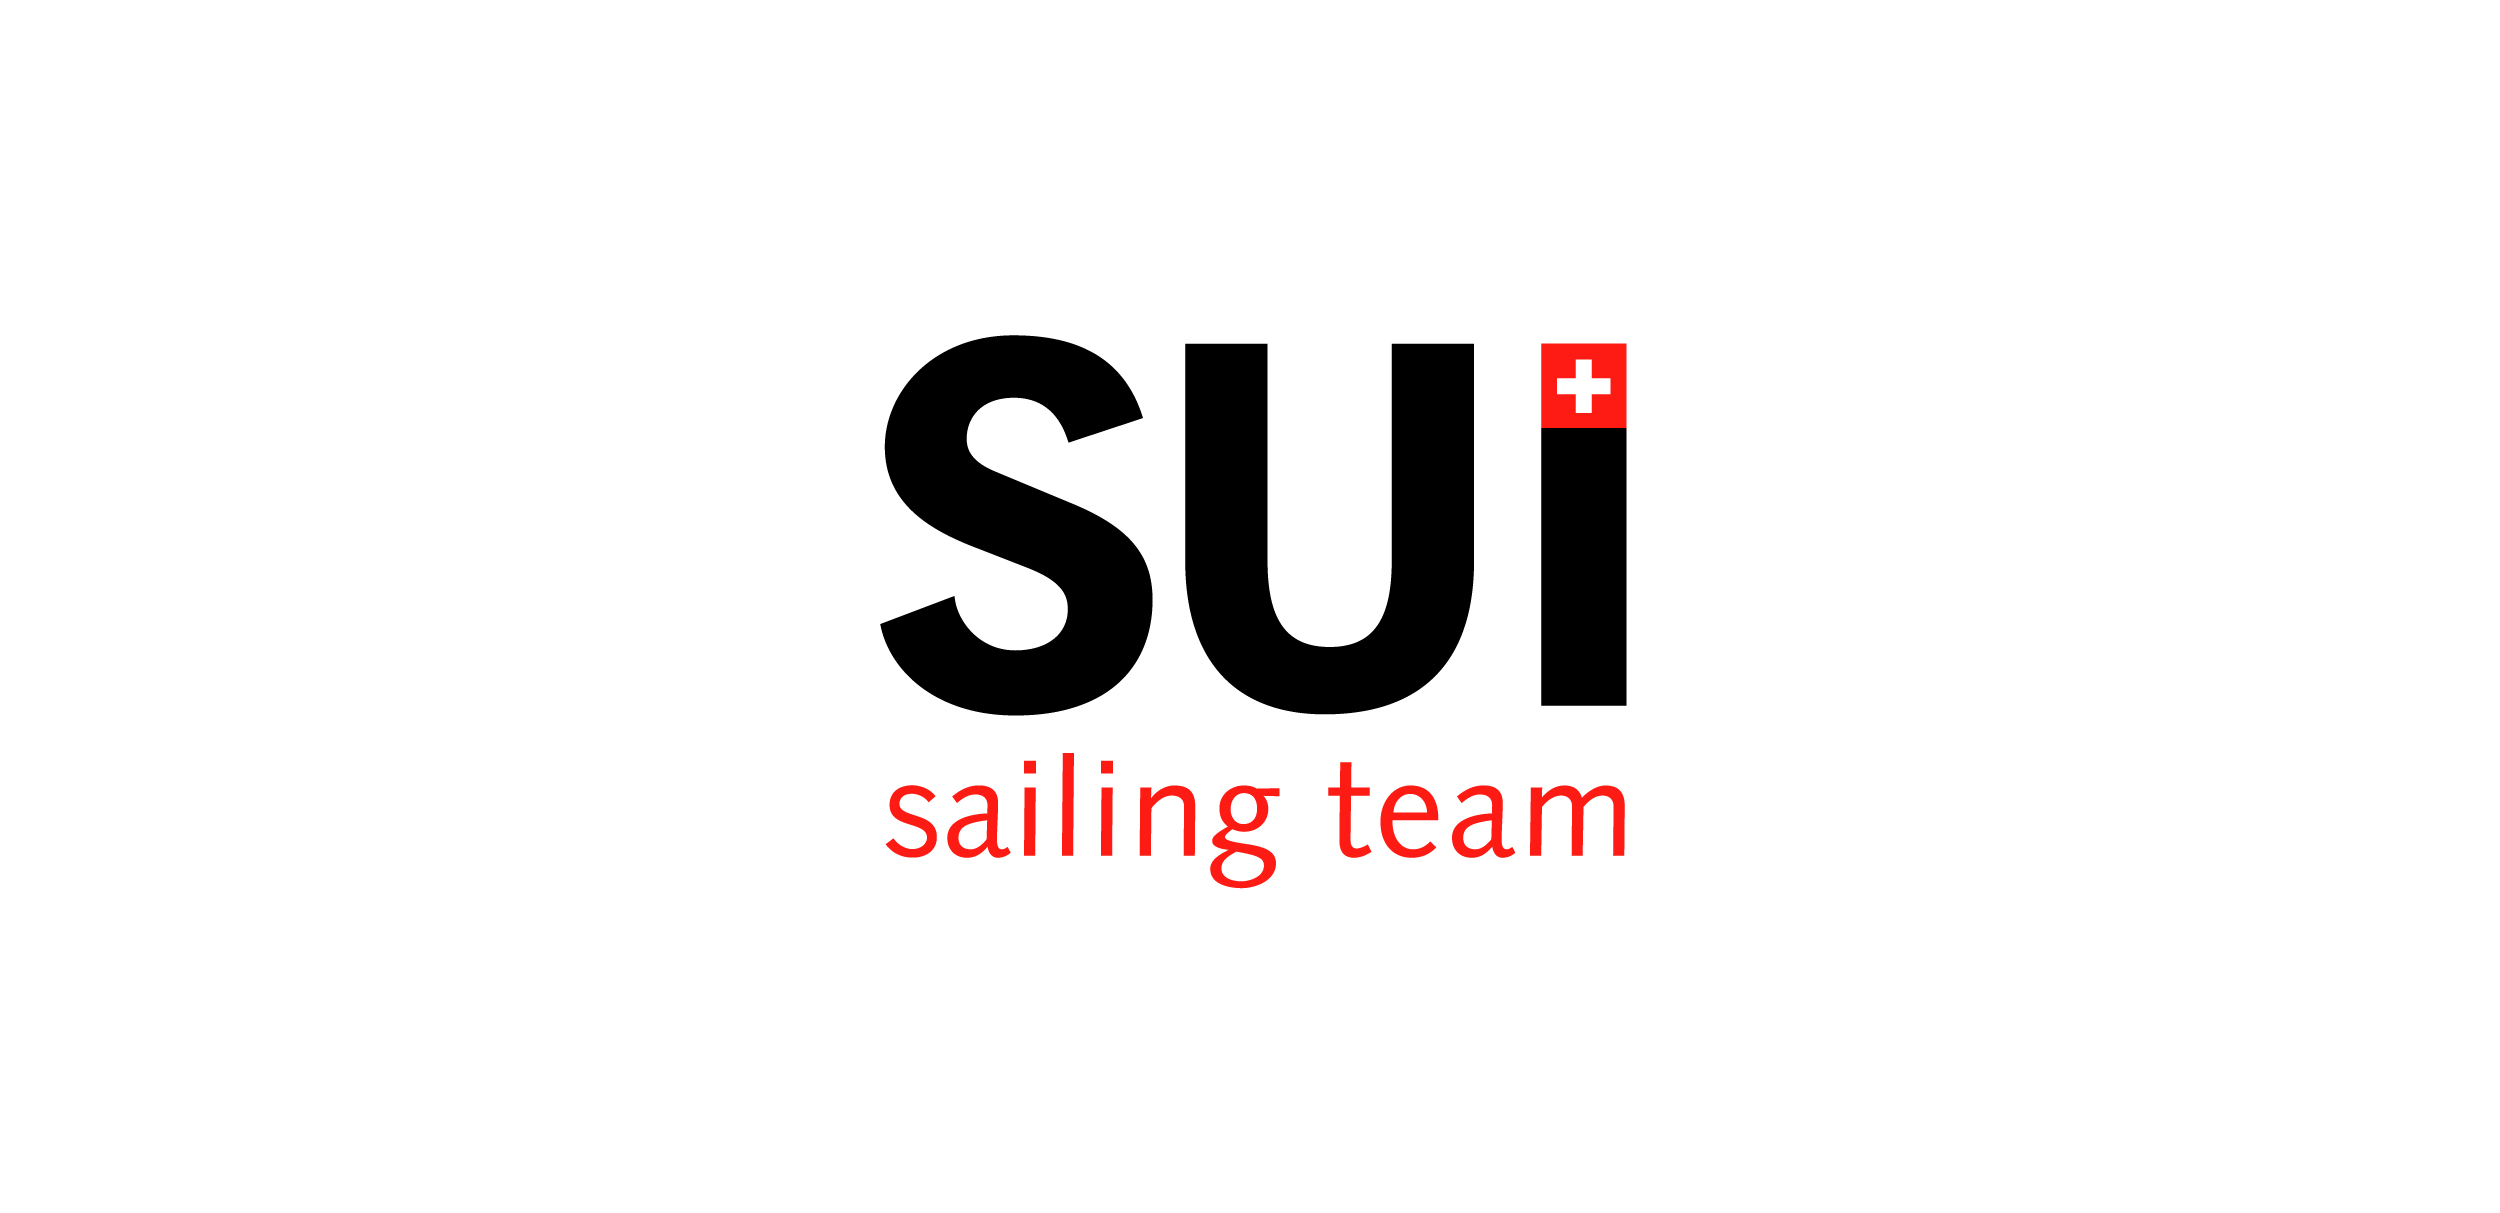 swiss sailing team logo